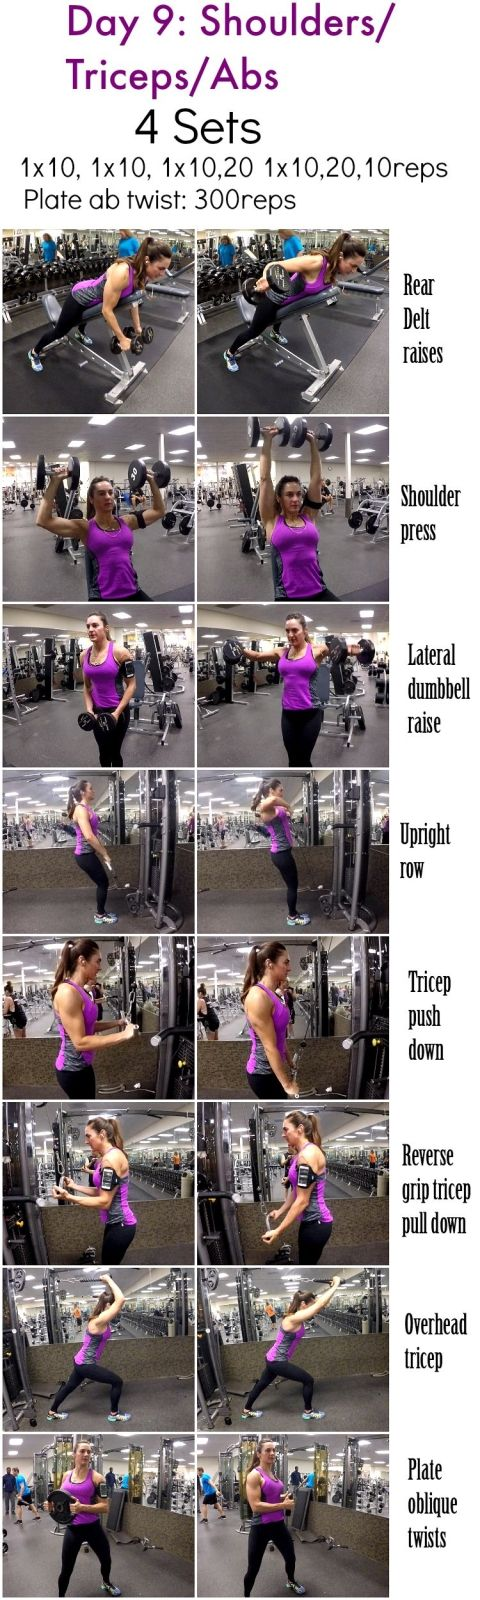 Day_9_shoulders_triceps_abs_BLOG